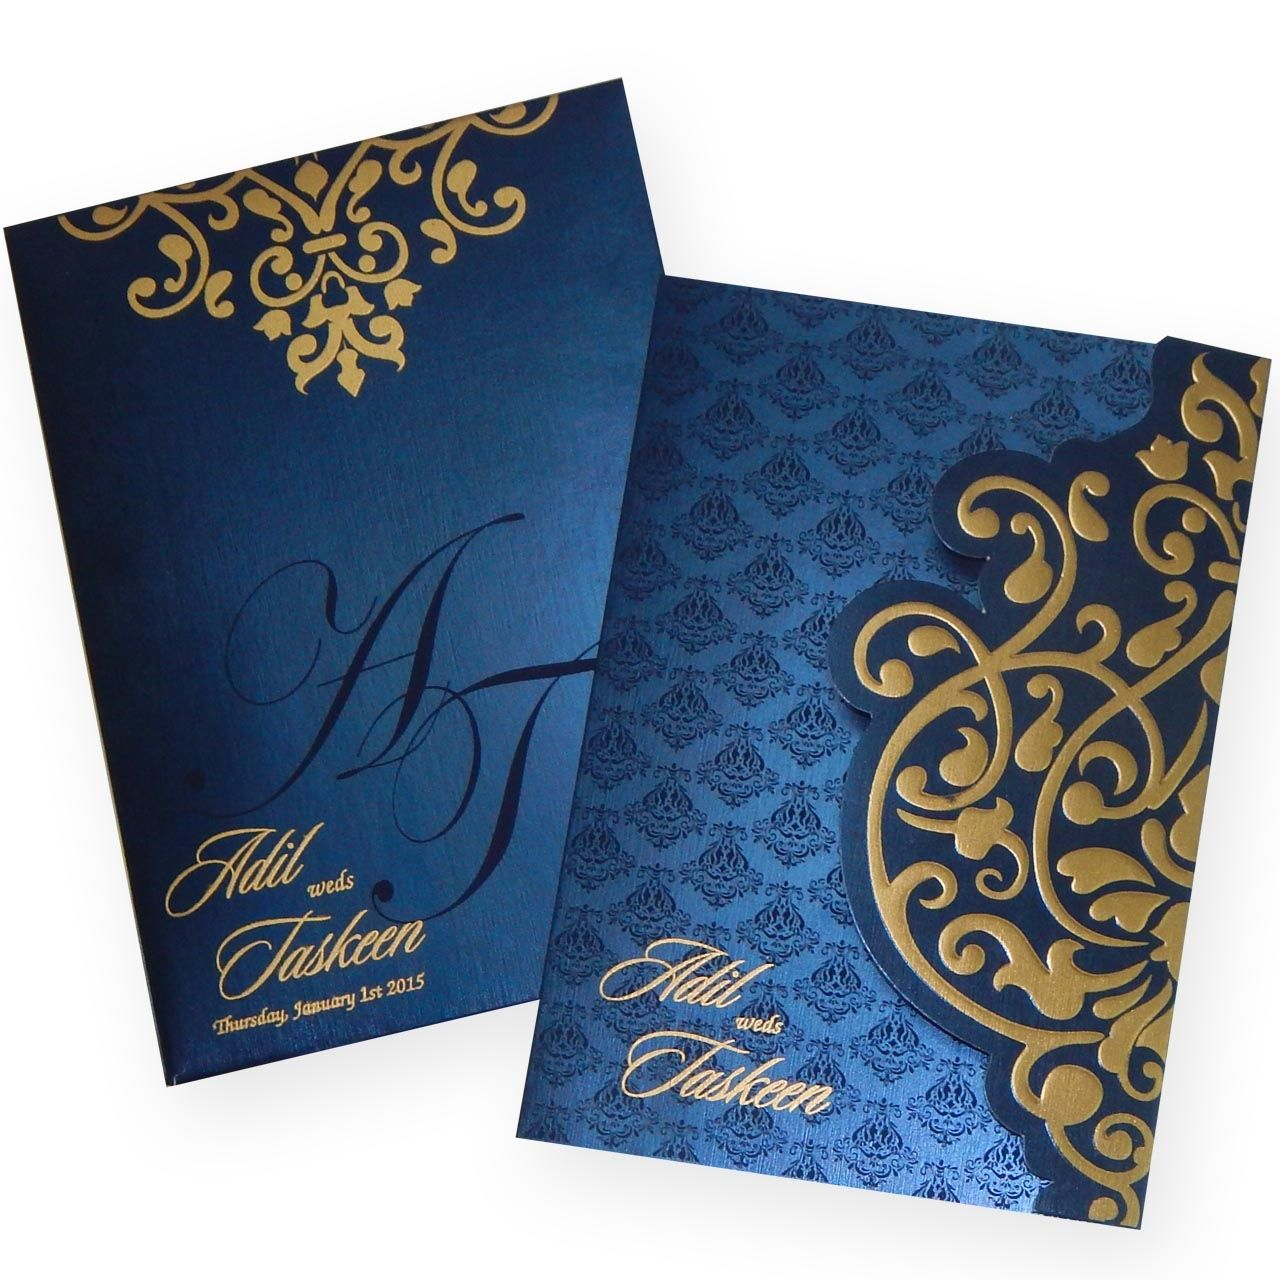 Indian wedding cards indian wedding cards pinterest for Wedding invitation printing in mumbai